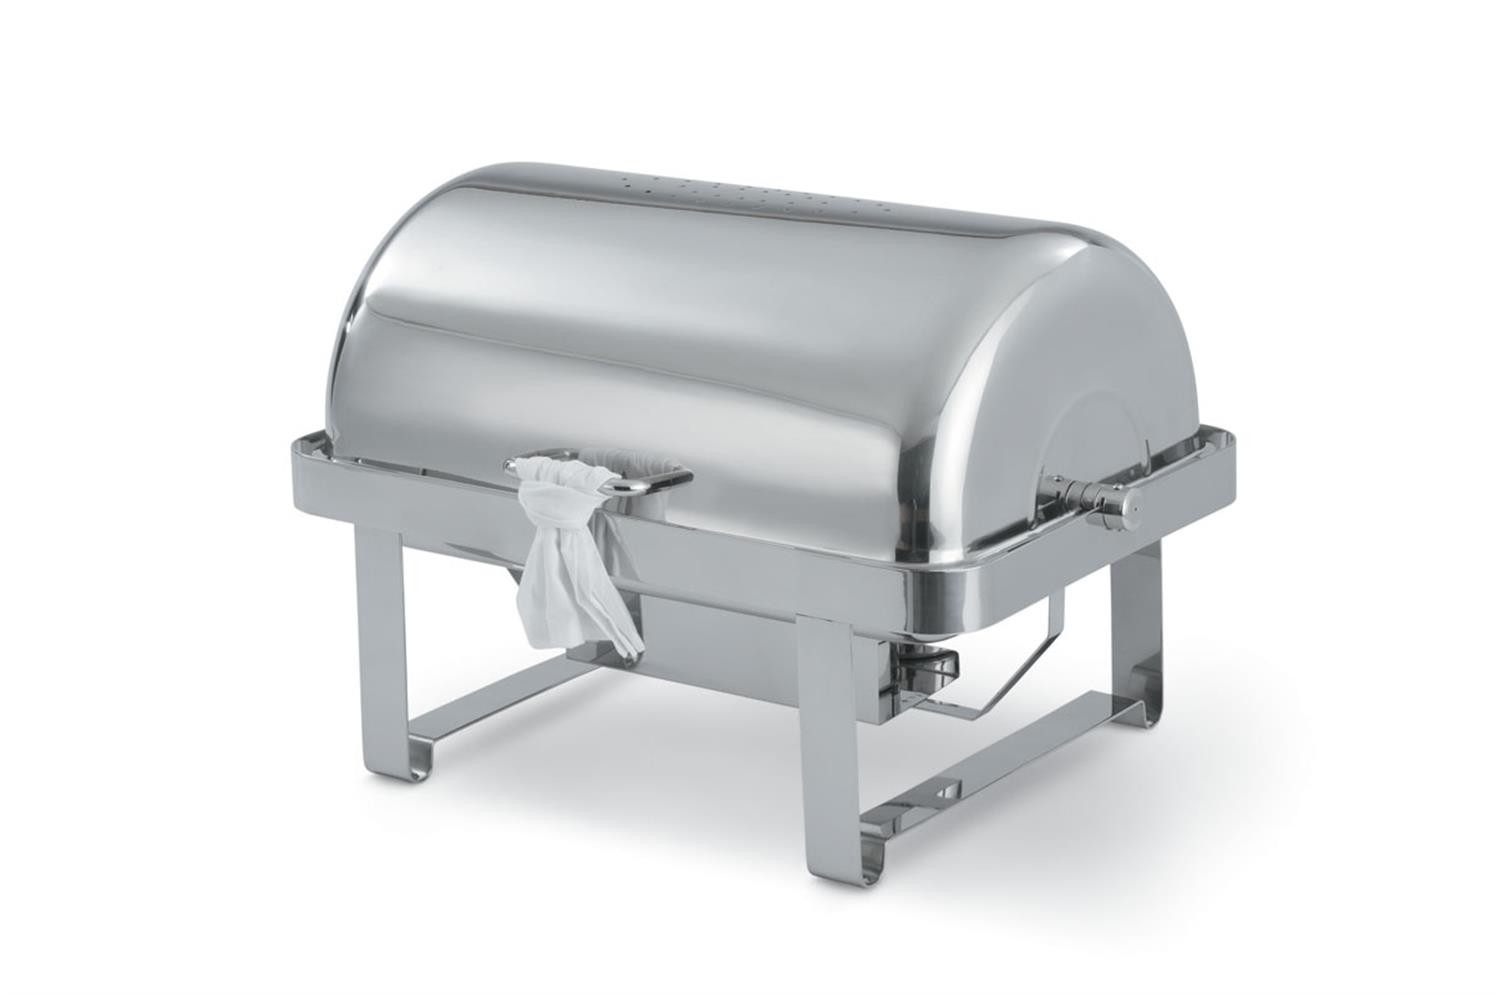 Vollrath 46350 Avenger Roll Top Rectangular Full Size Chafer 9 Qt,